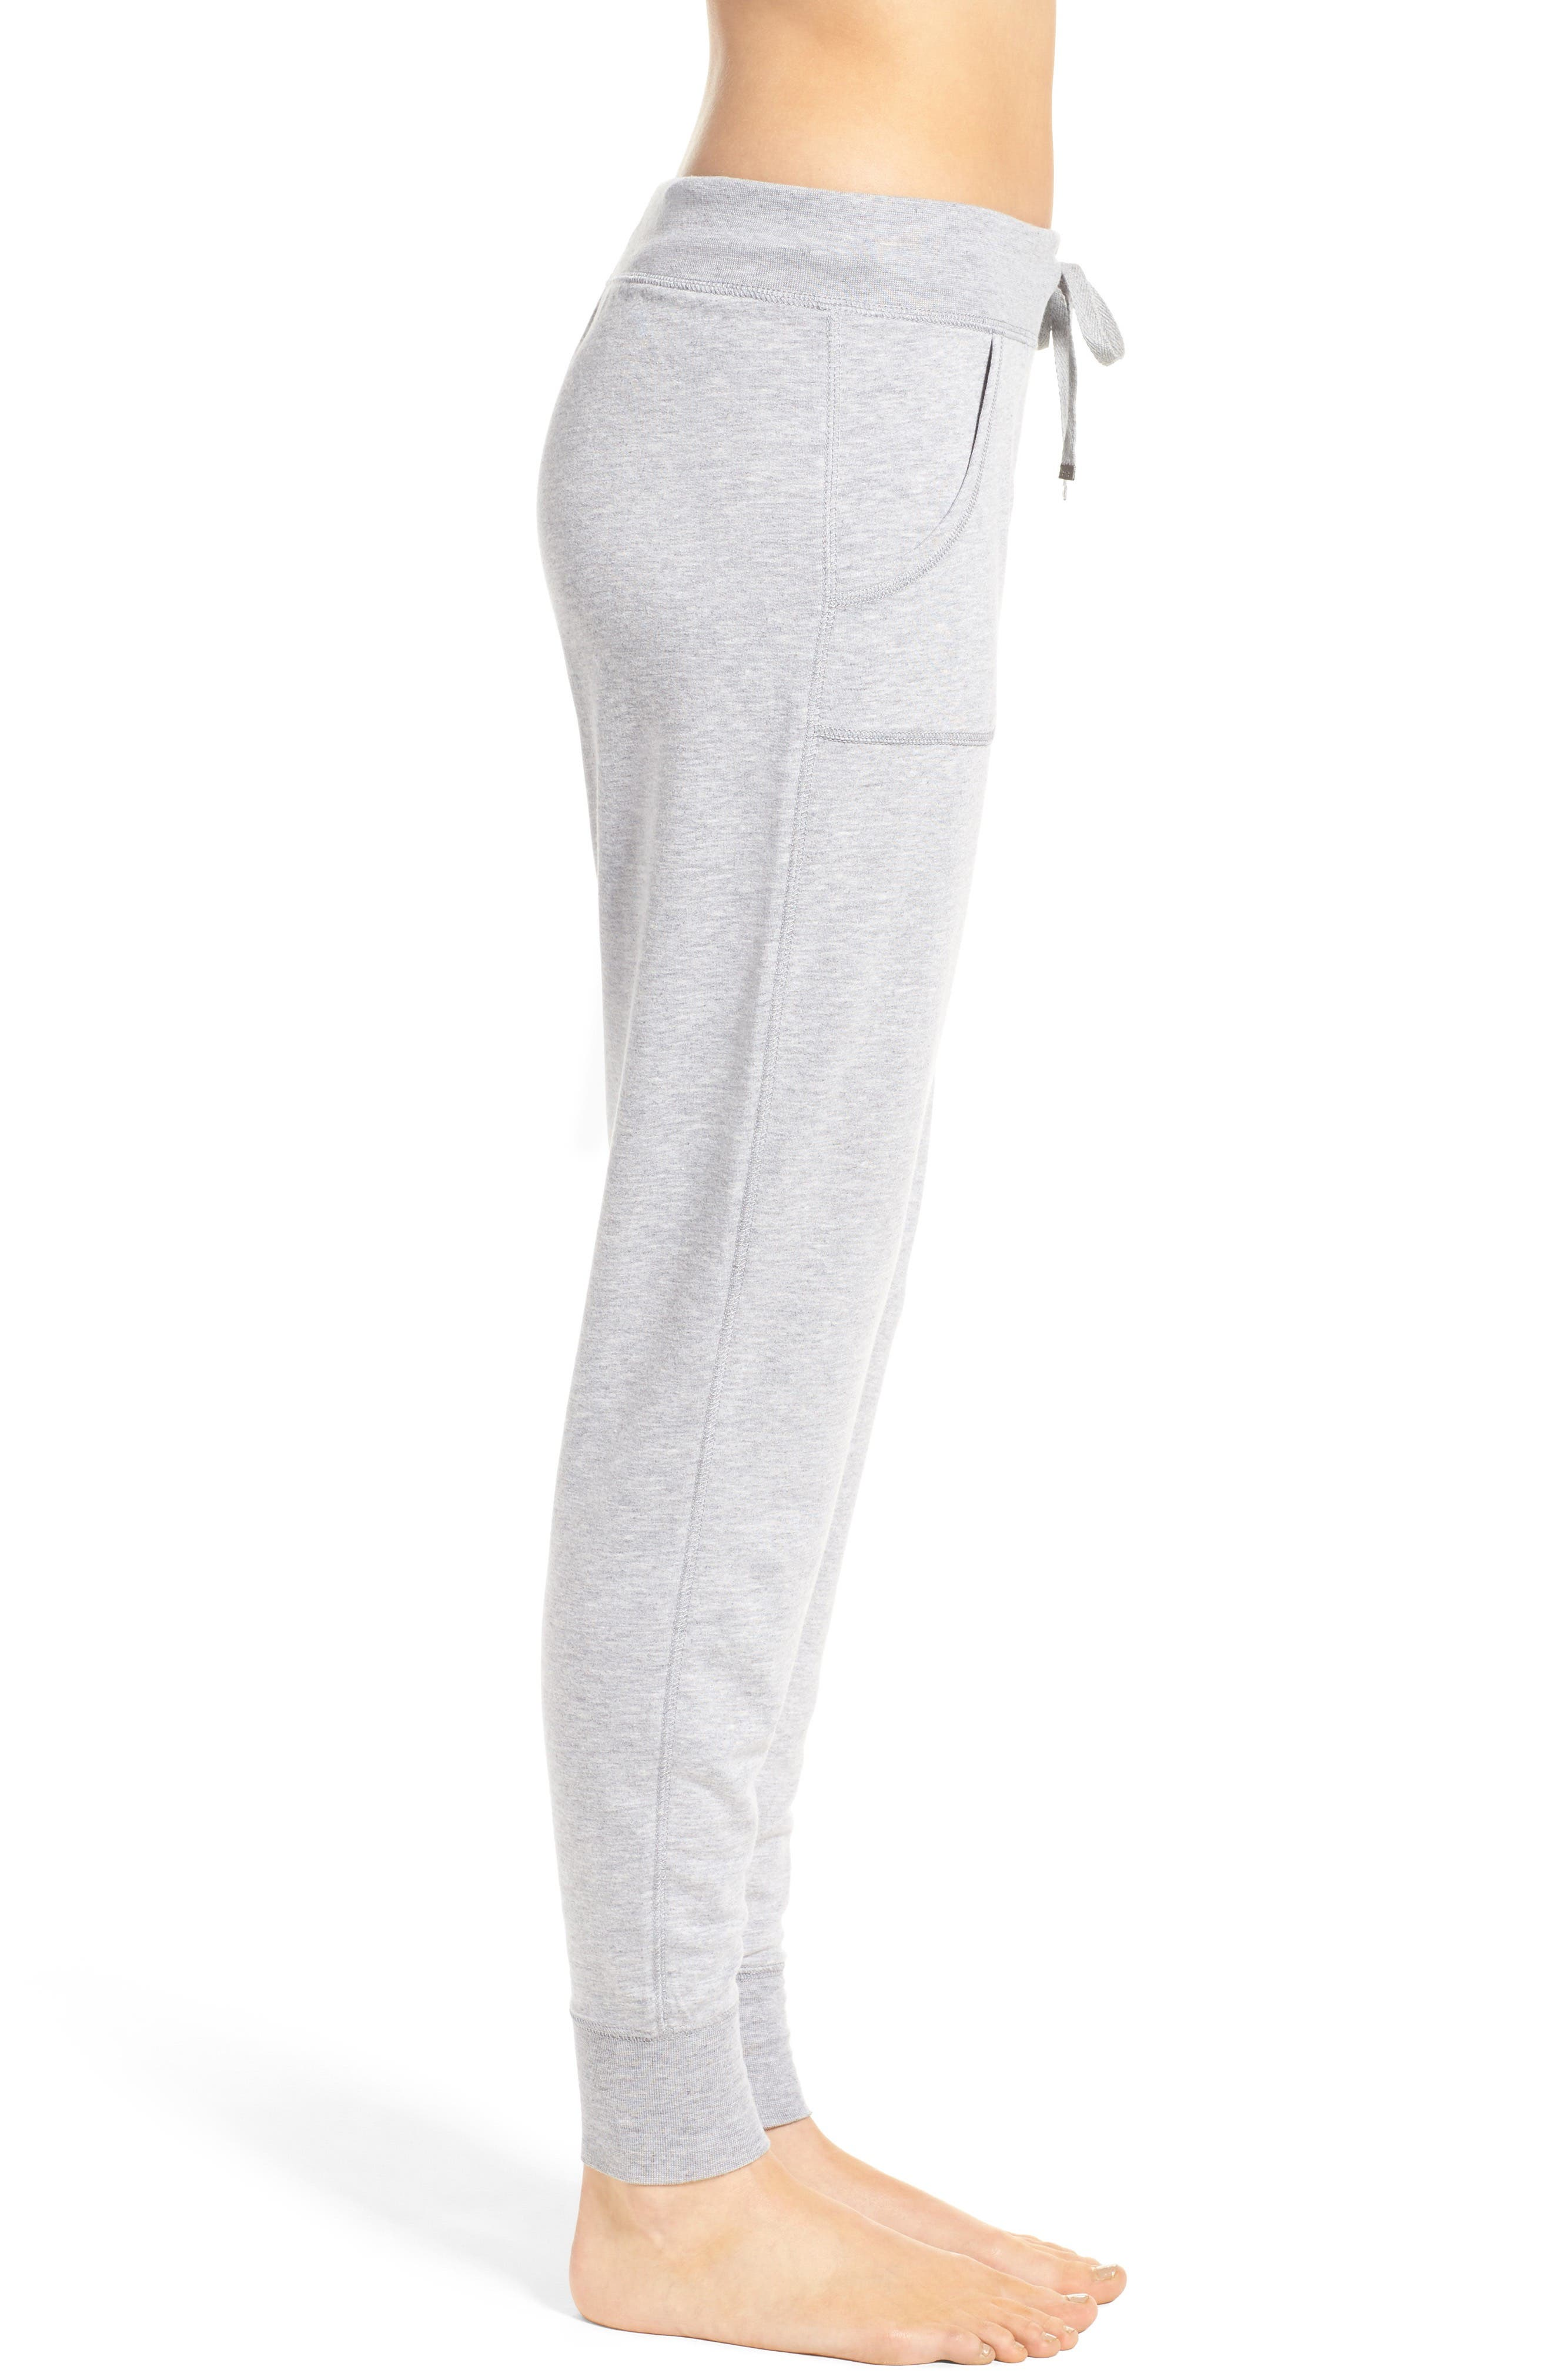 All About It Lounge Pants,                             Alternate thumbnail 20, color,